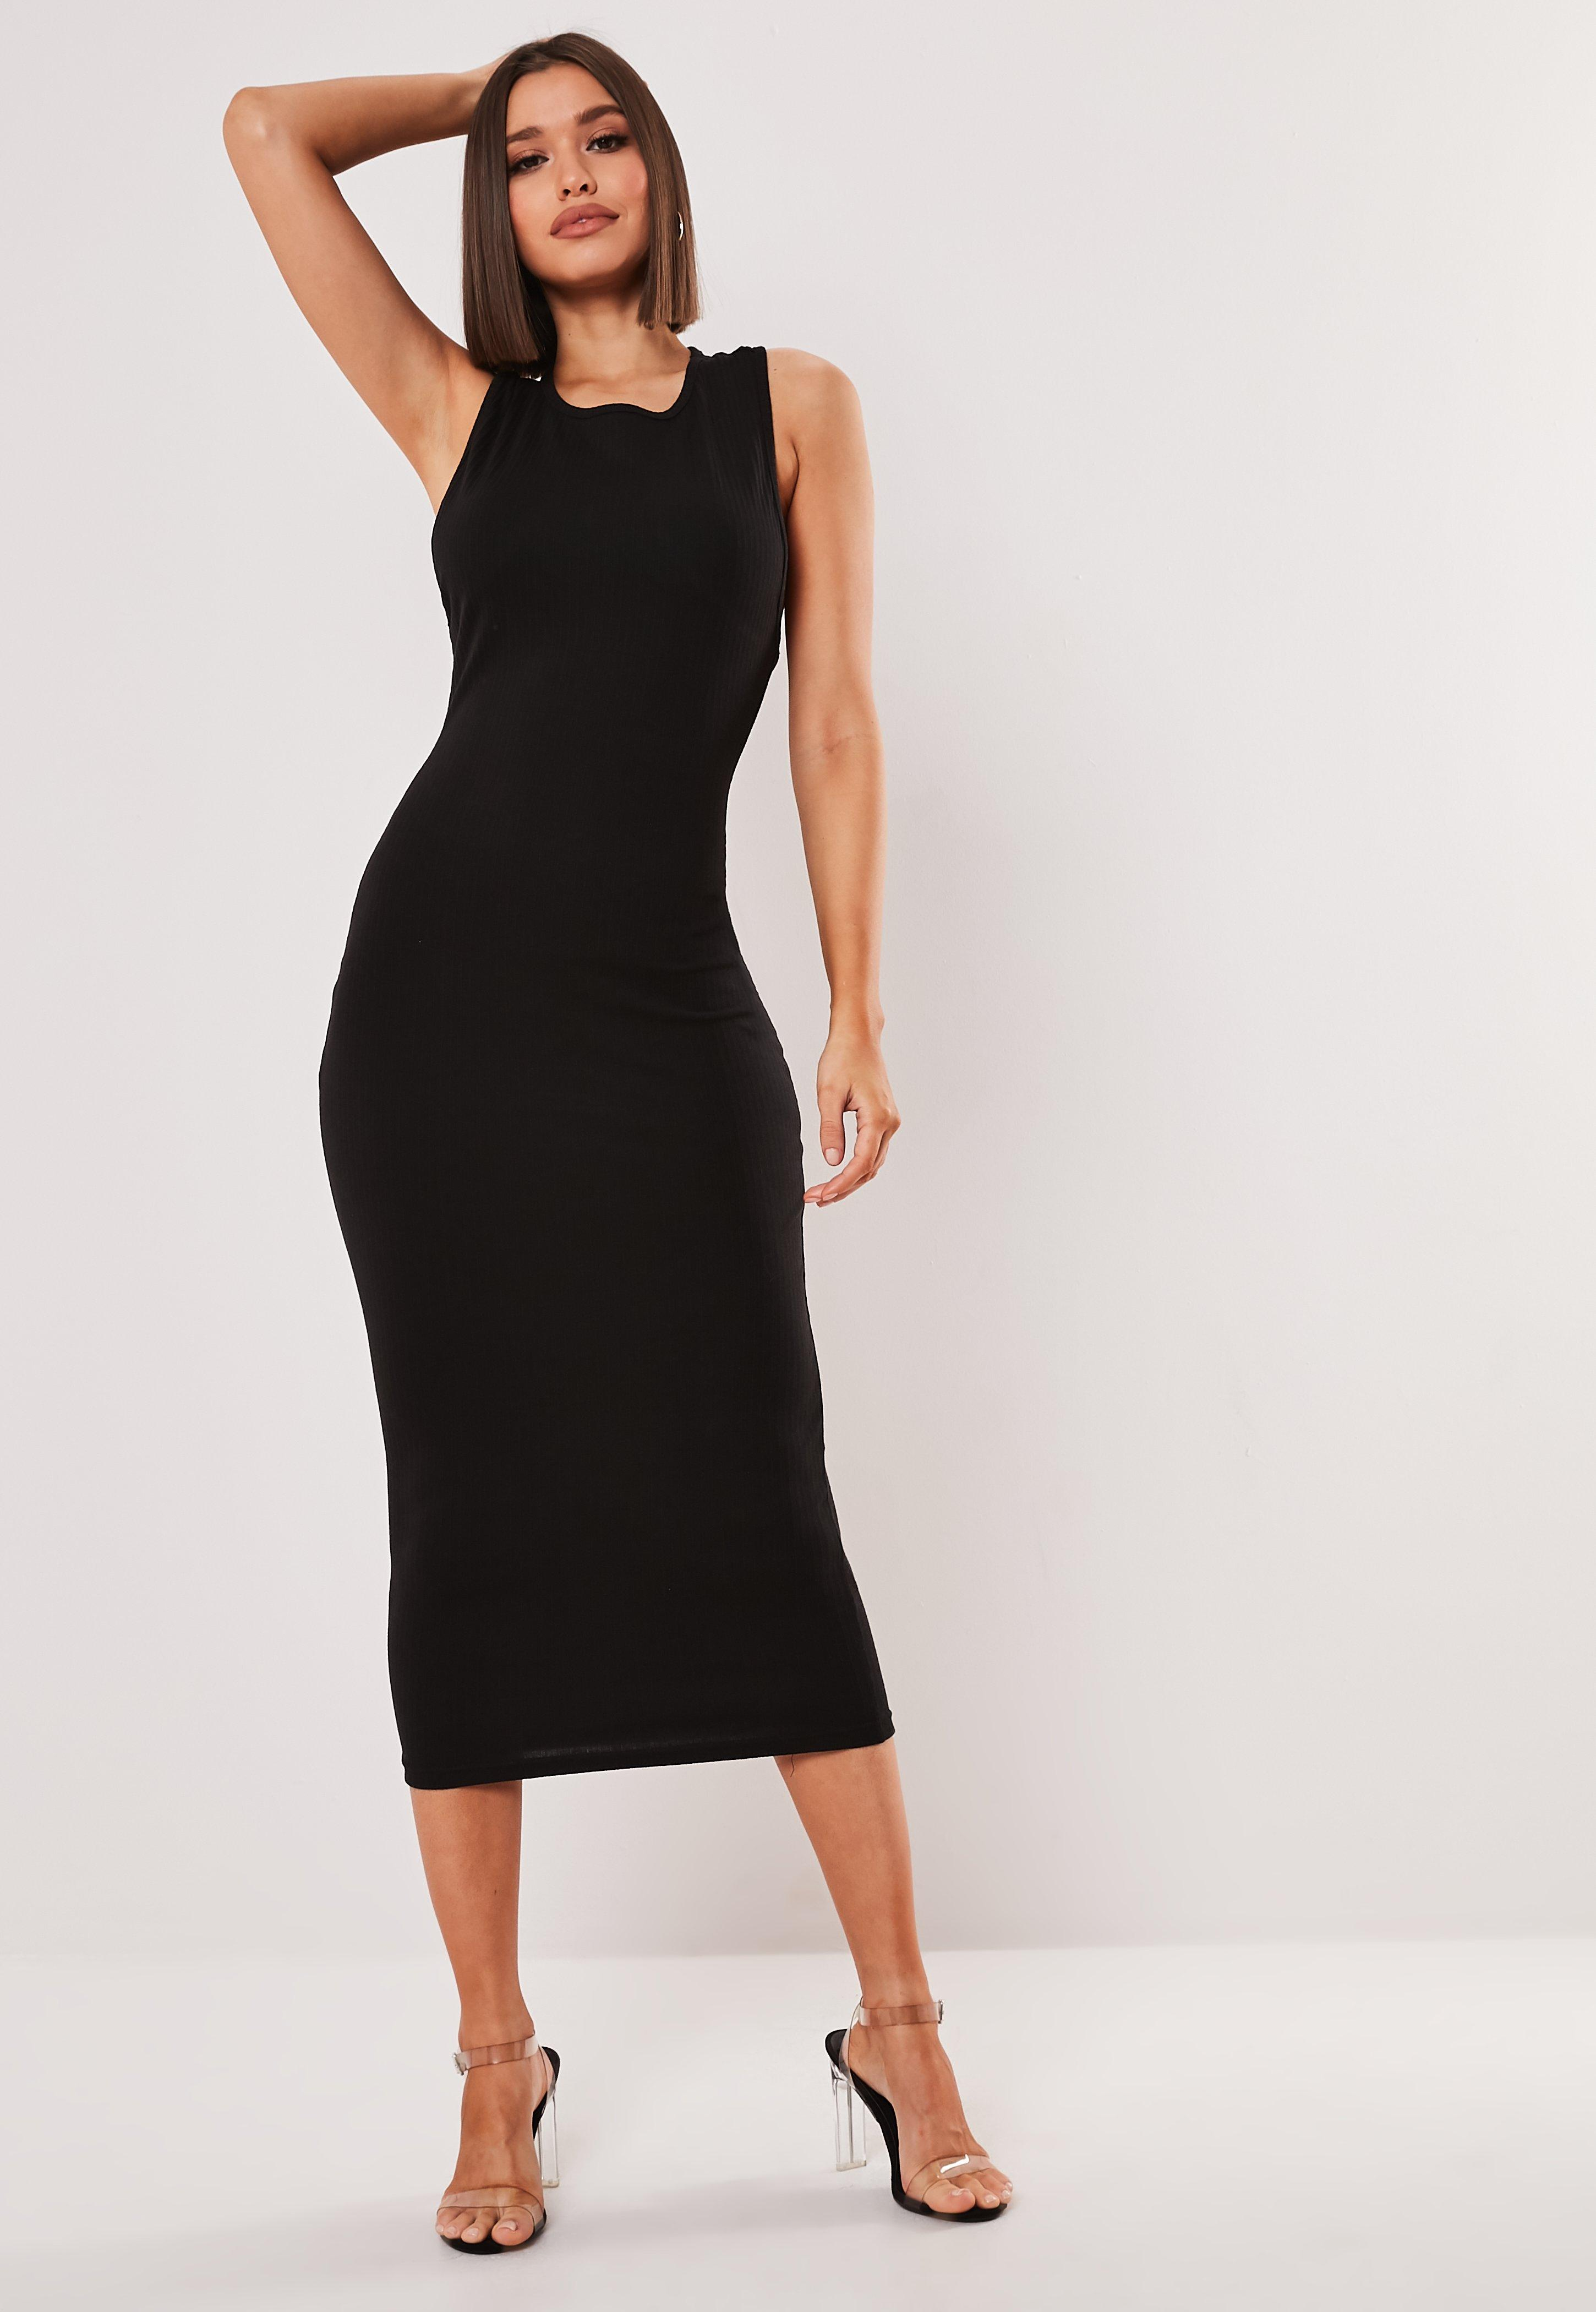 Black Ribbed Racer Back Bodycon Midi Dress by Missguided